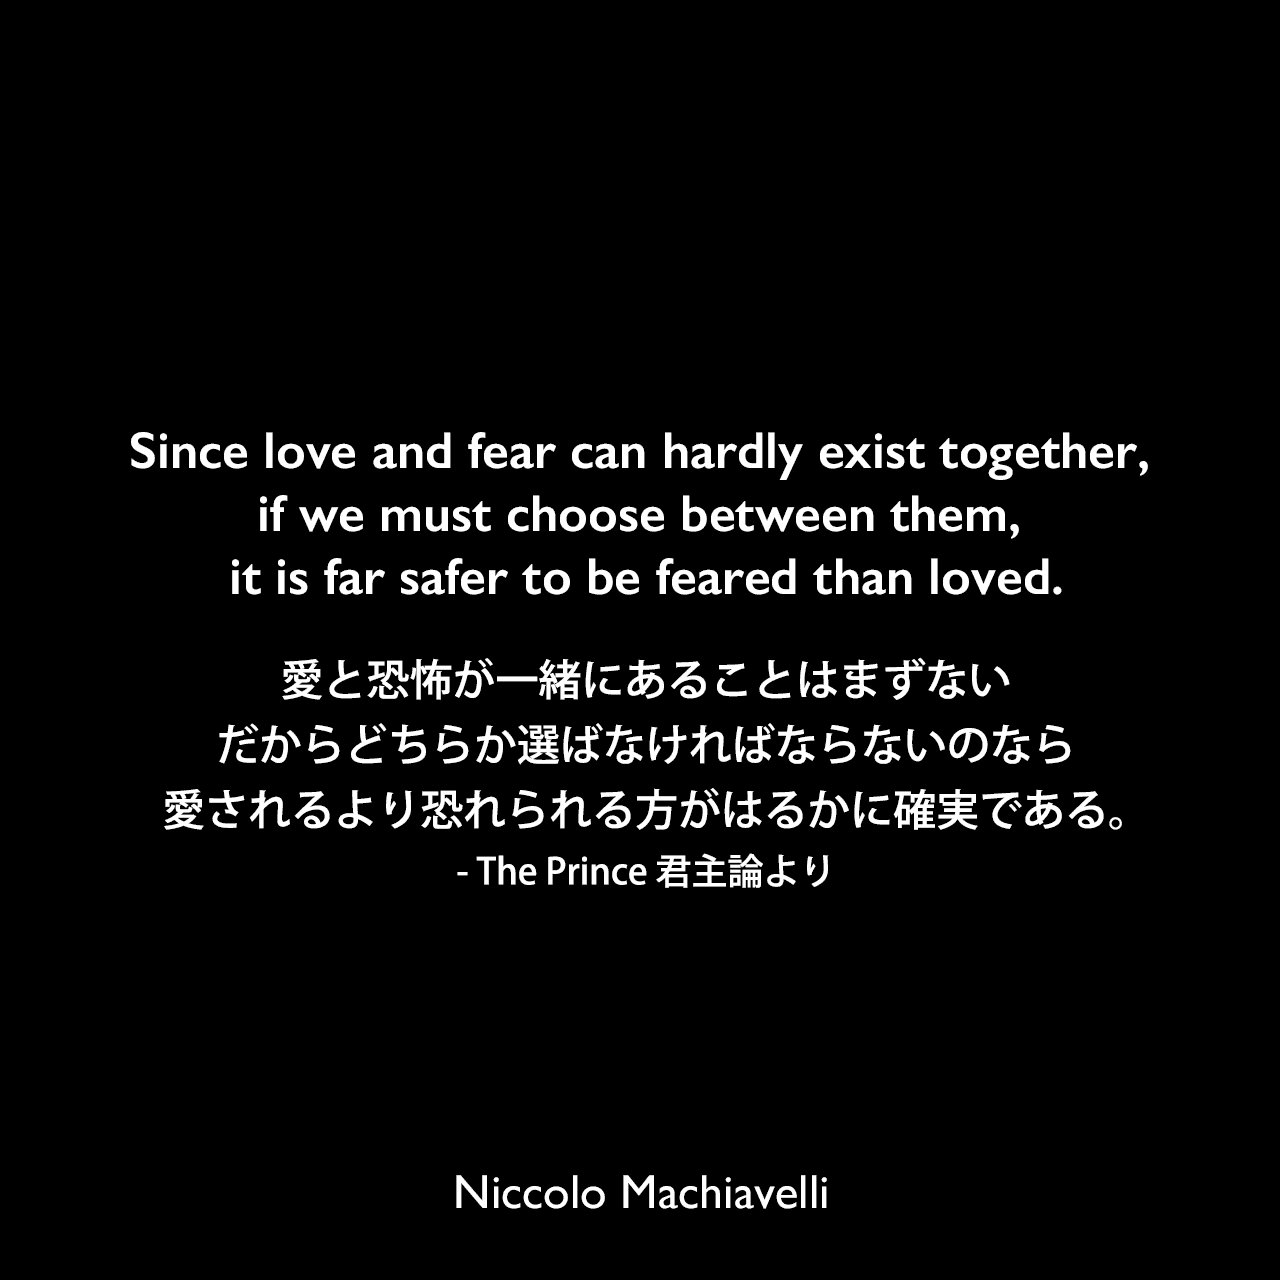 Since love and fear can hardly exist together, if we must choose between them, it is far safer to be feared than loved.愛と恐怖が一緒にあることはまずない、だからどちらか選ばなければならないのなら、愛されるより恐れられる方がはるかに確実である。- The Prince 君主論よりNiccolo Machiavelli